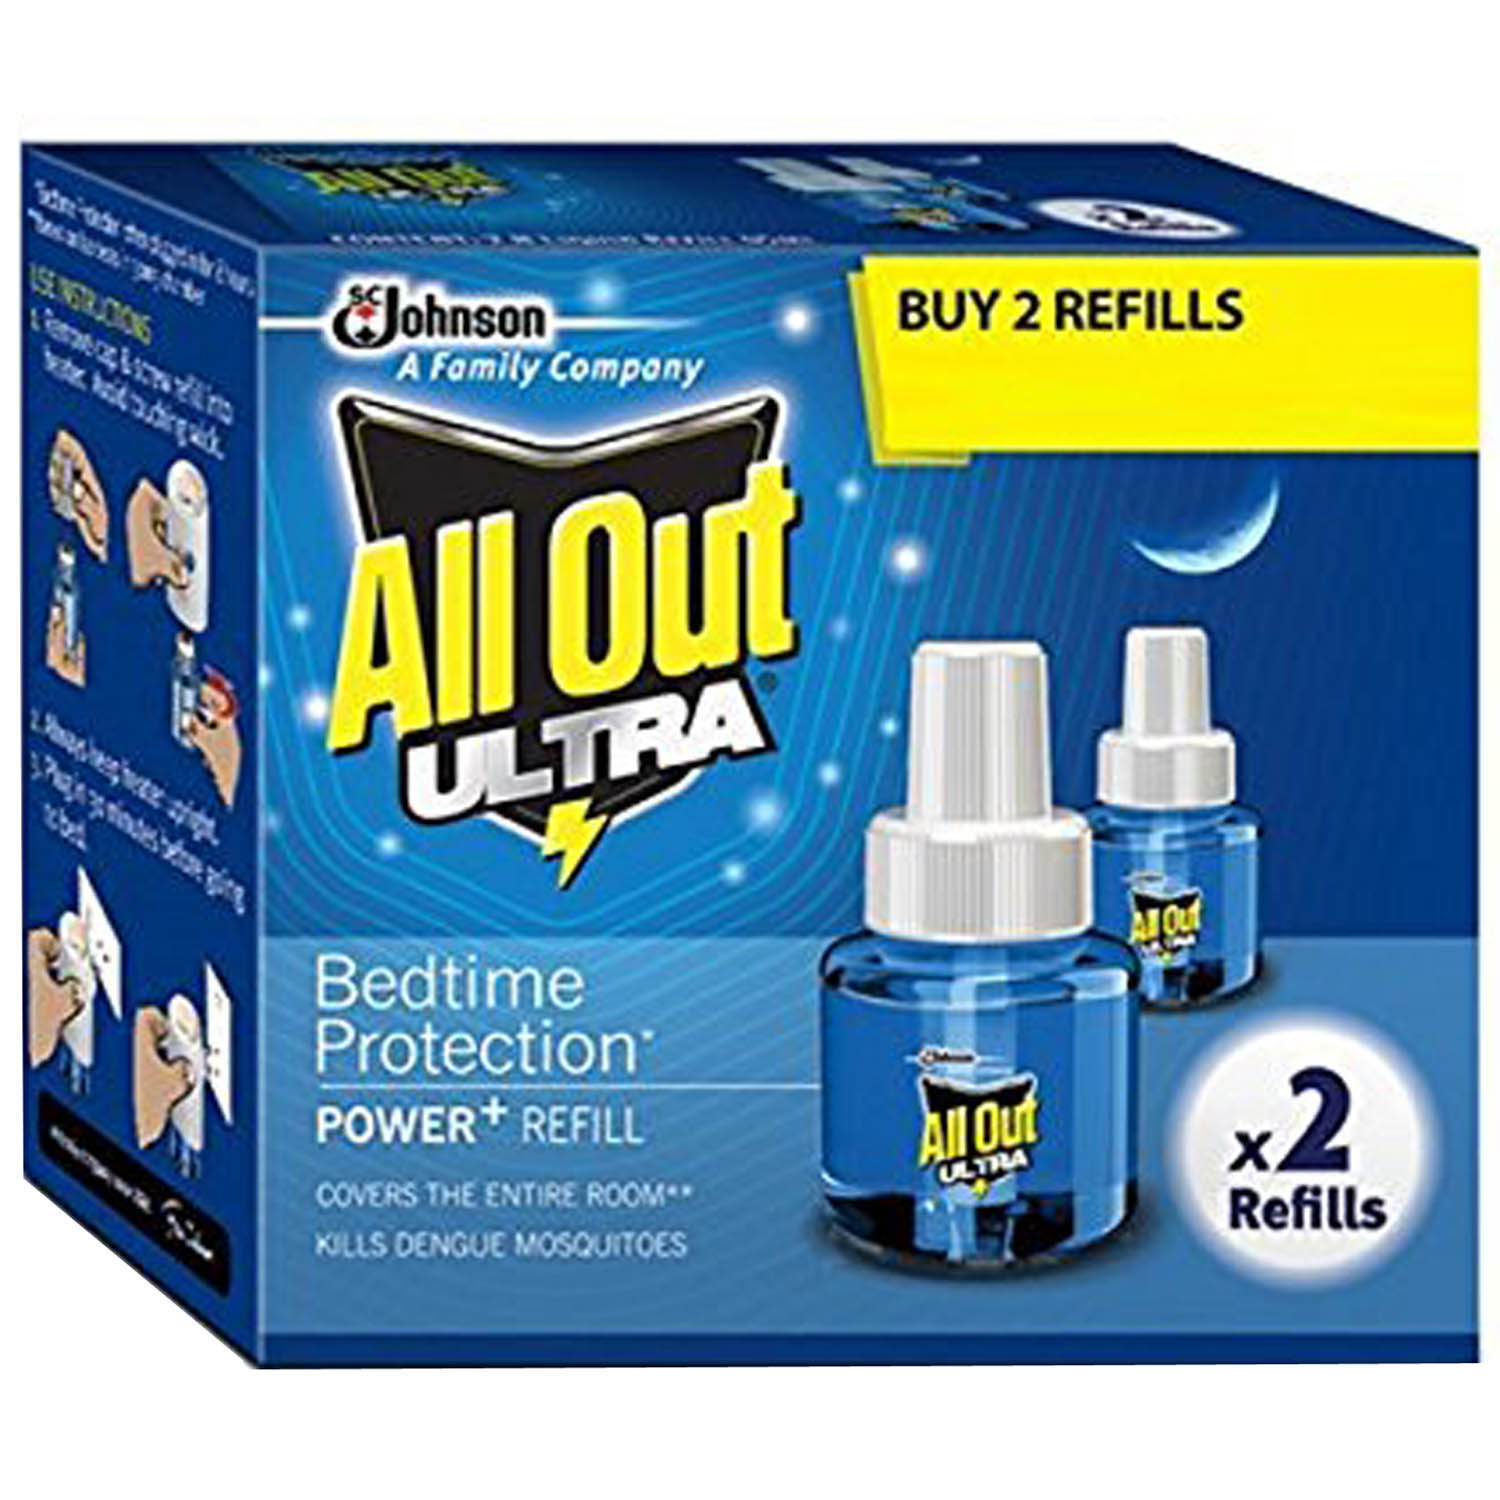 ALL OUT ULTRA REFILL TWIN PACK